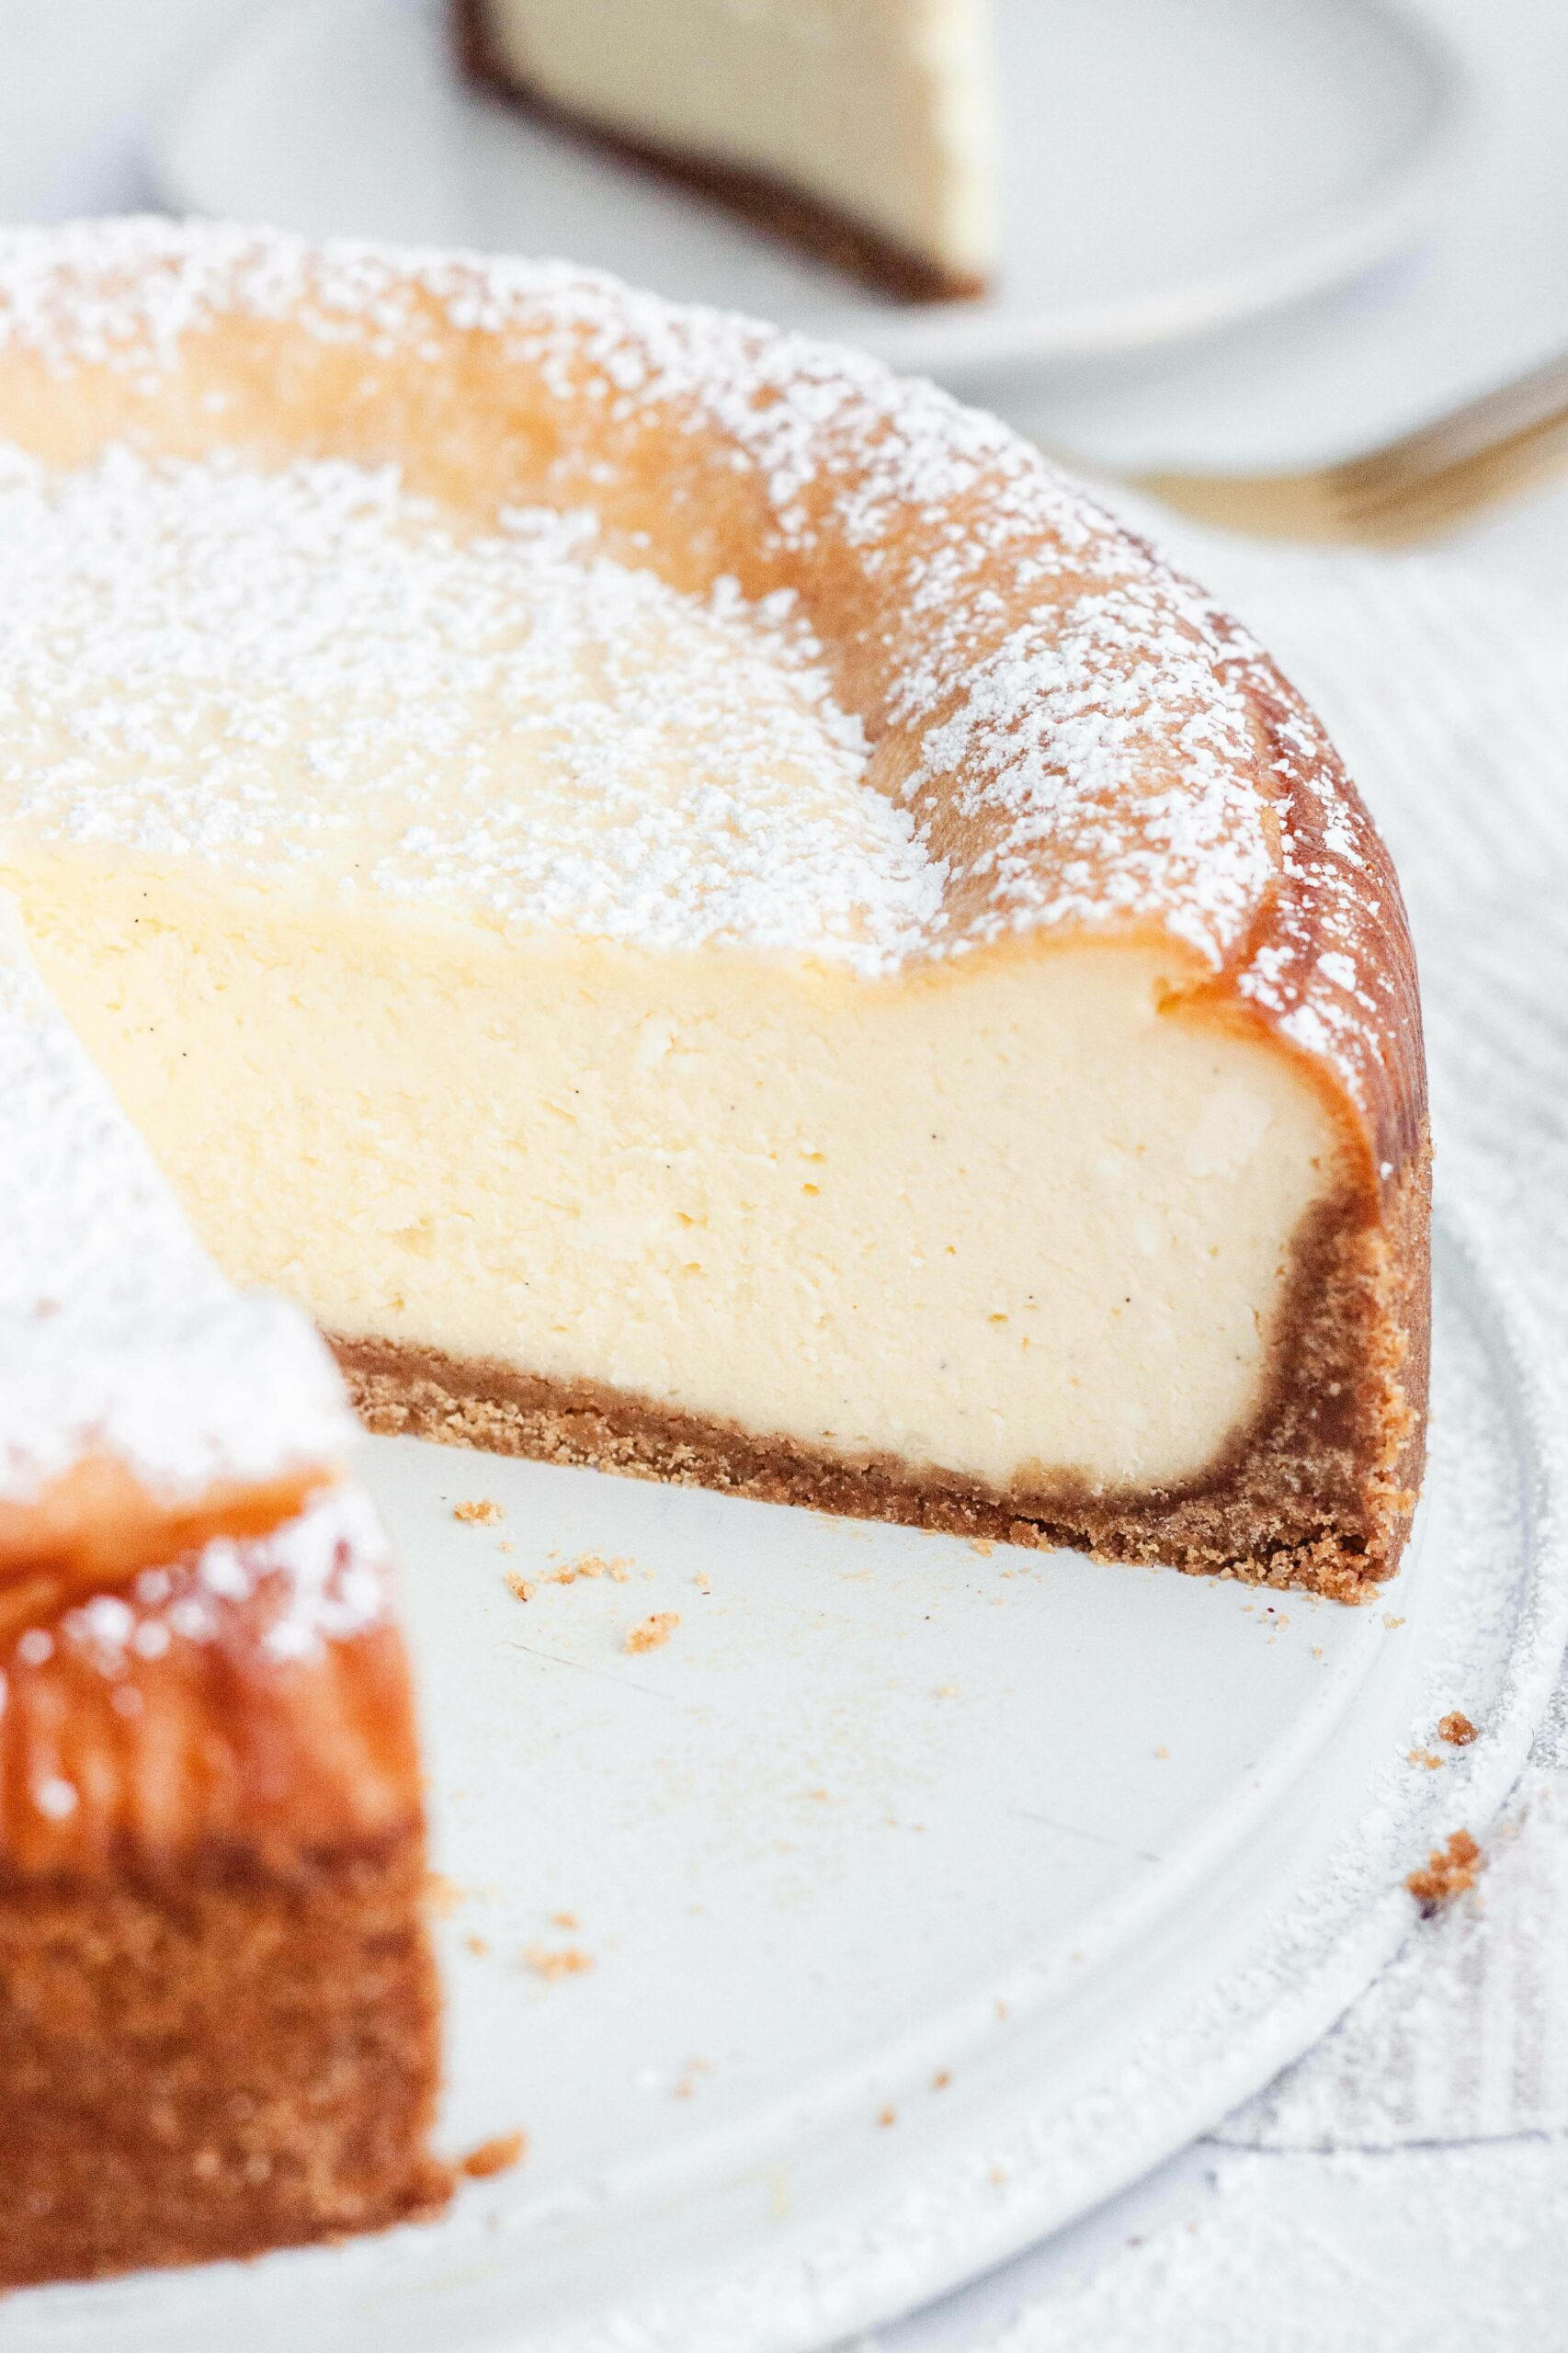 BEST EVER New York Cheesecake Recipe (WITH VIDEO!) - Simple Recipes New York Cheesecake